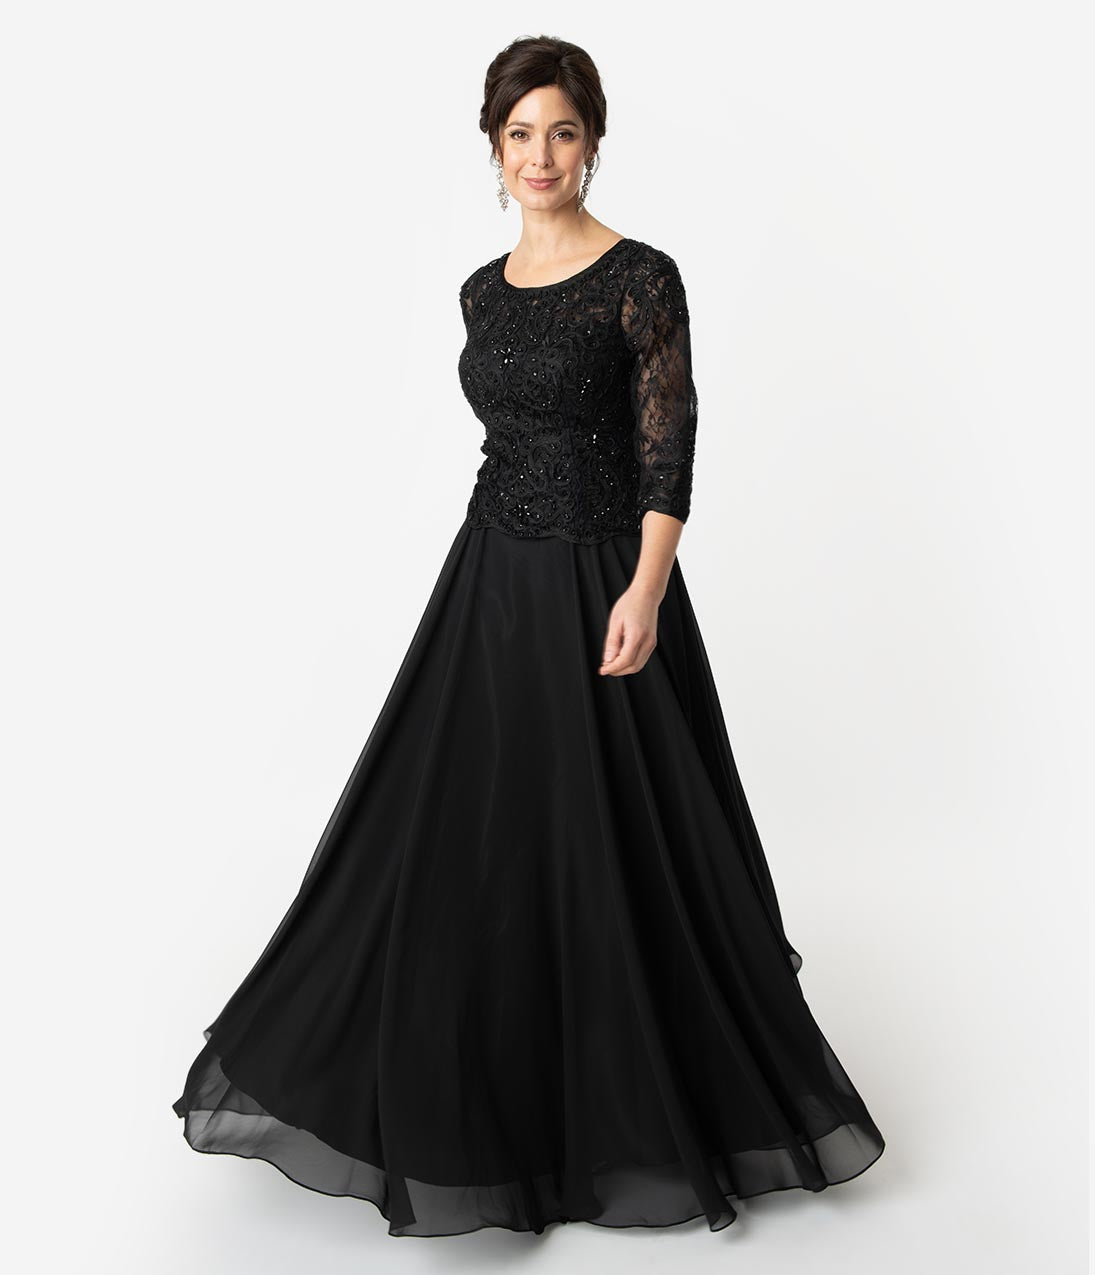 Vintage Evening Dresses and Formal Evening Gowns Black Embellished Lace Sleeved Chiffon Long Dress $174.00 AT vintagedancer.com